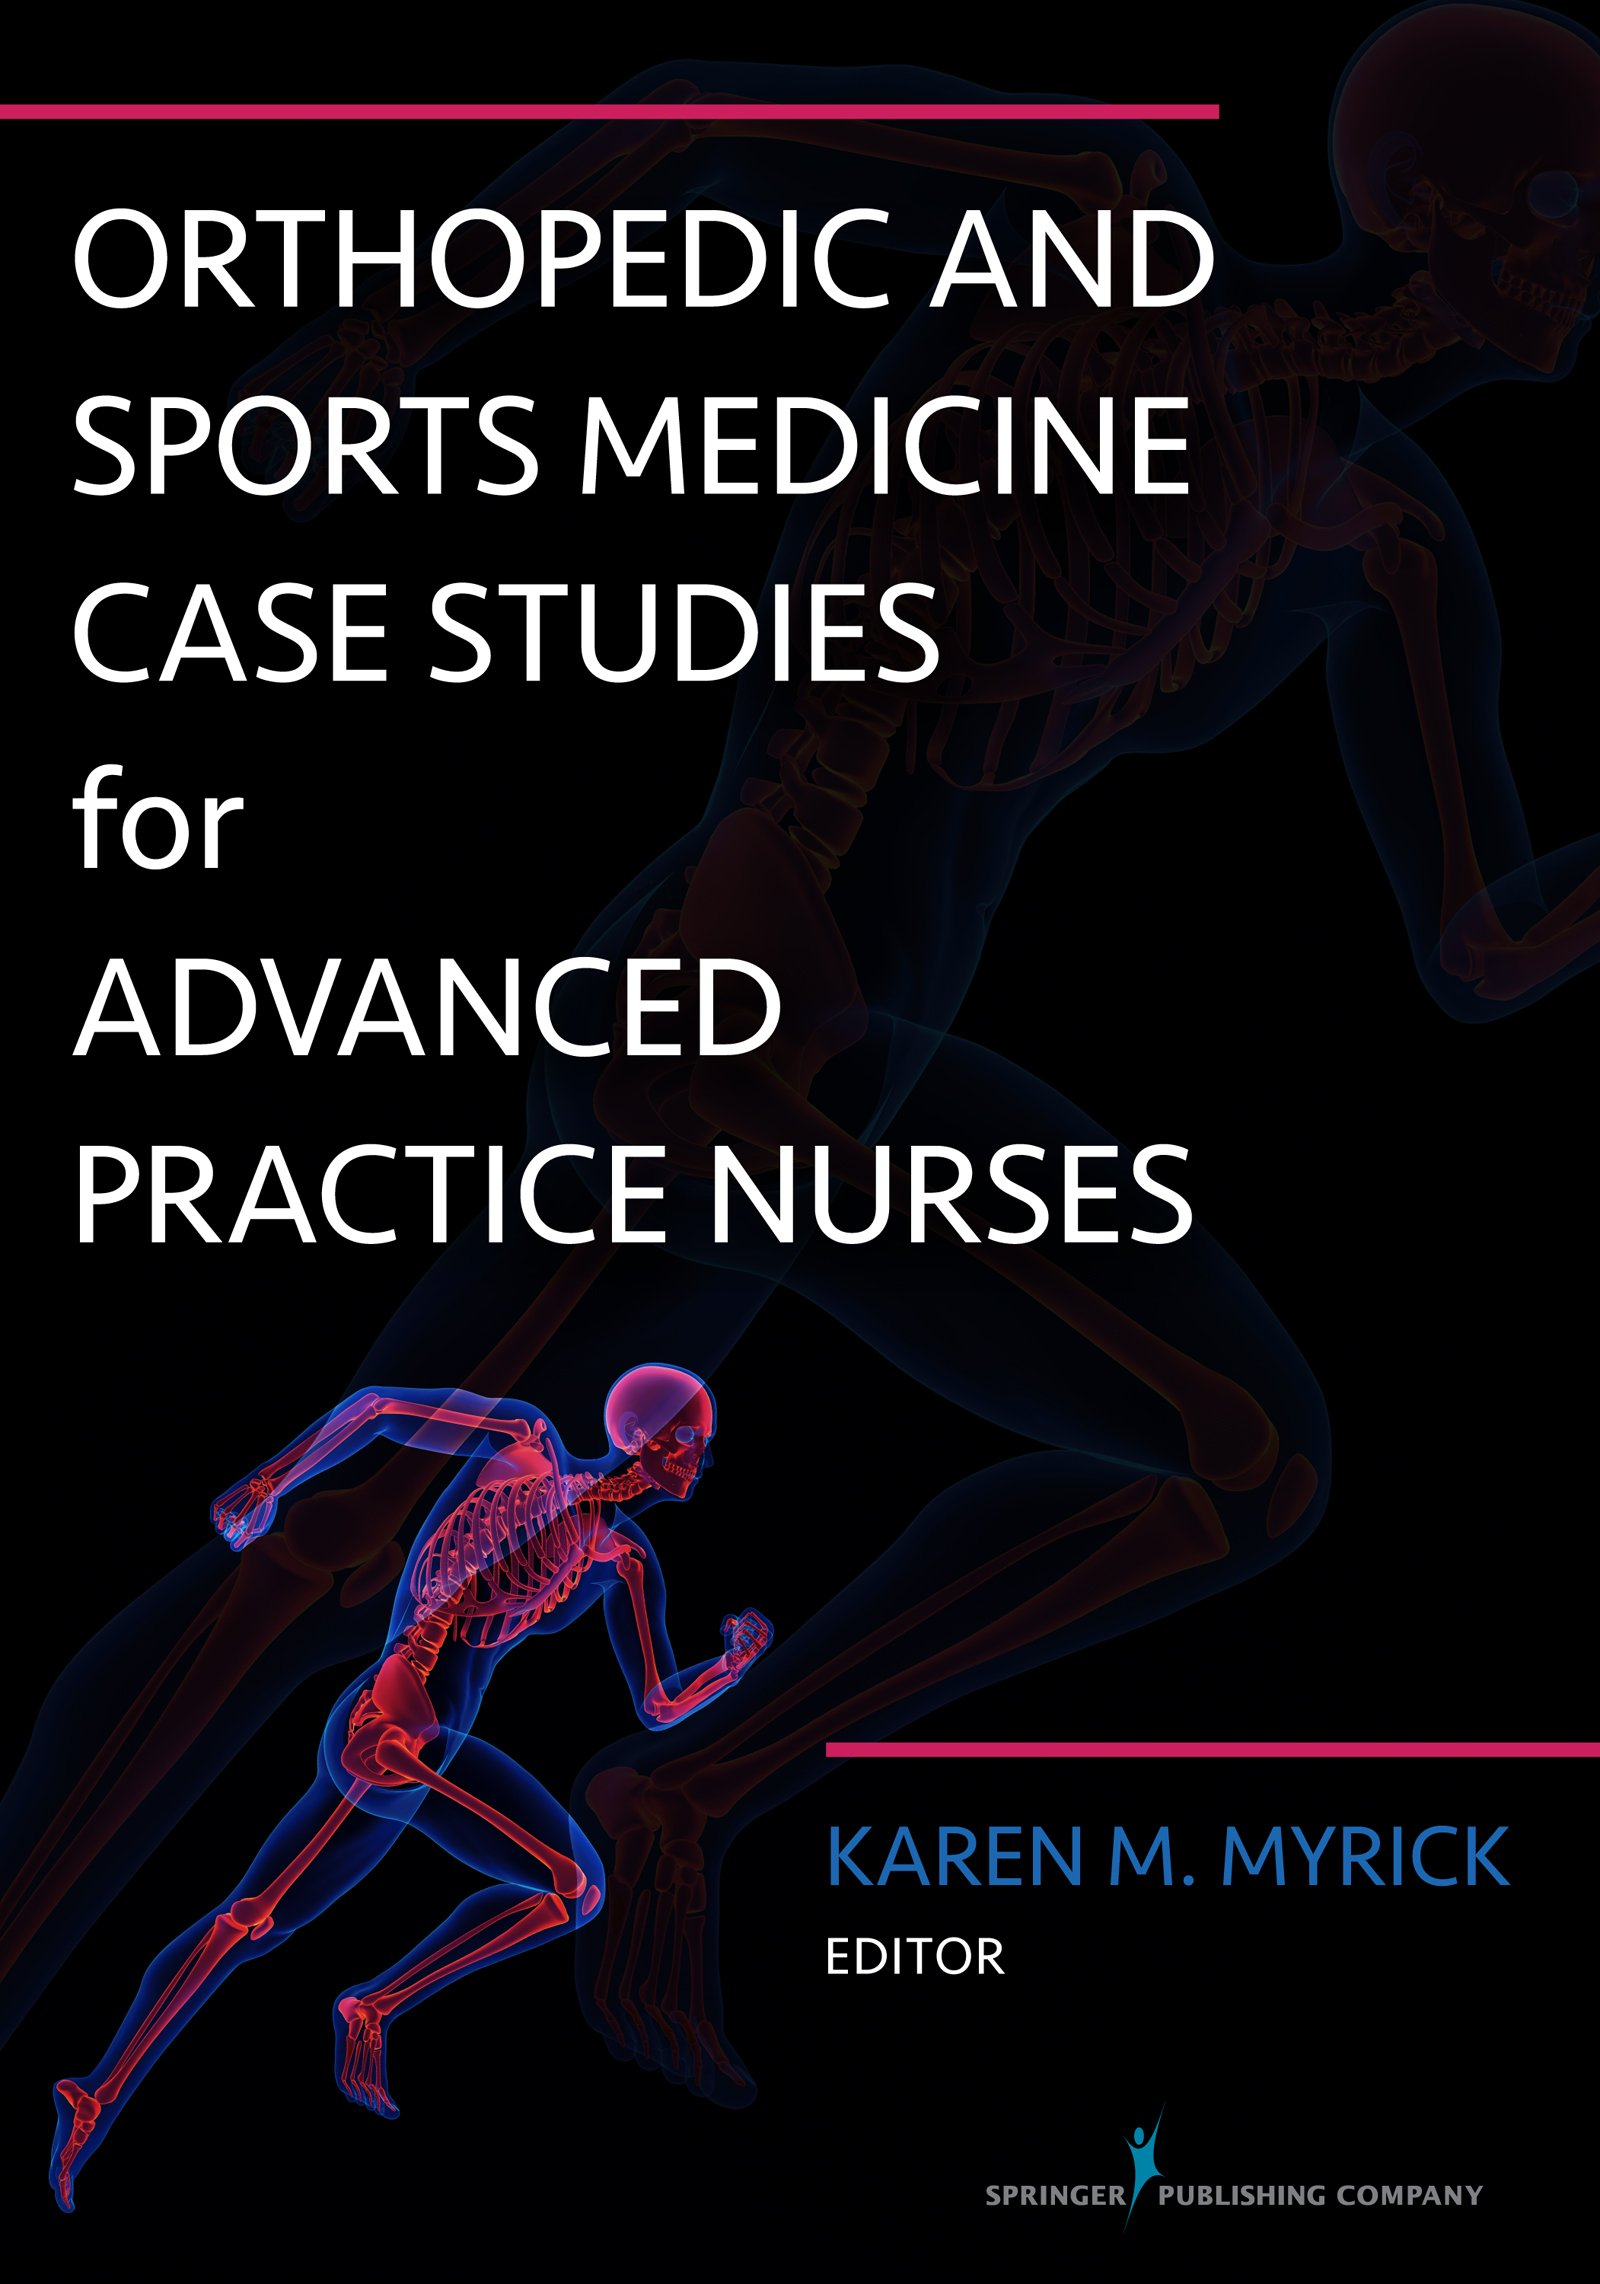 Image OfOrthopedic And Sports Medicine Case Studies For Advanced Practice Nurses